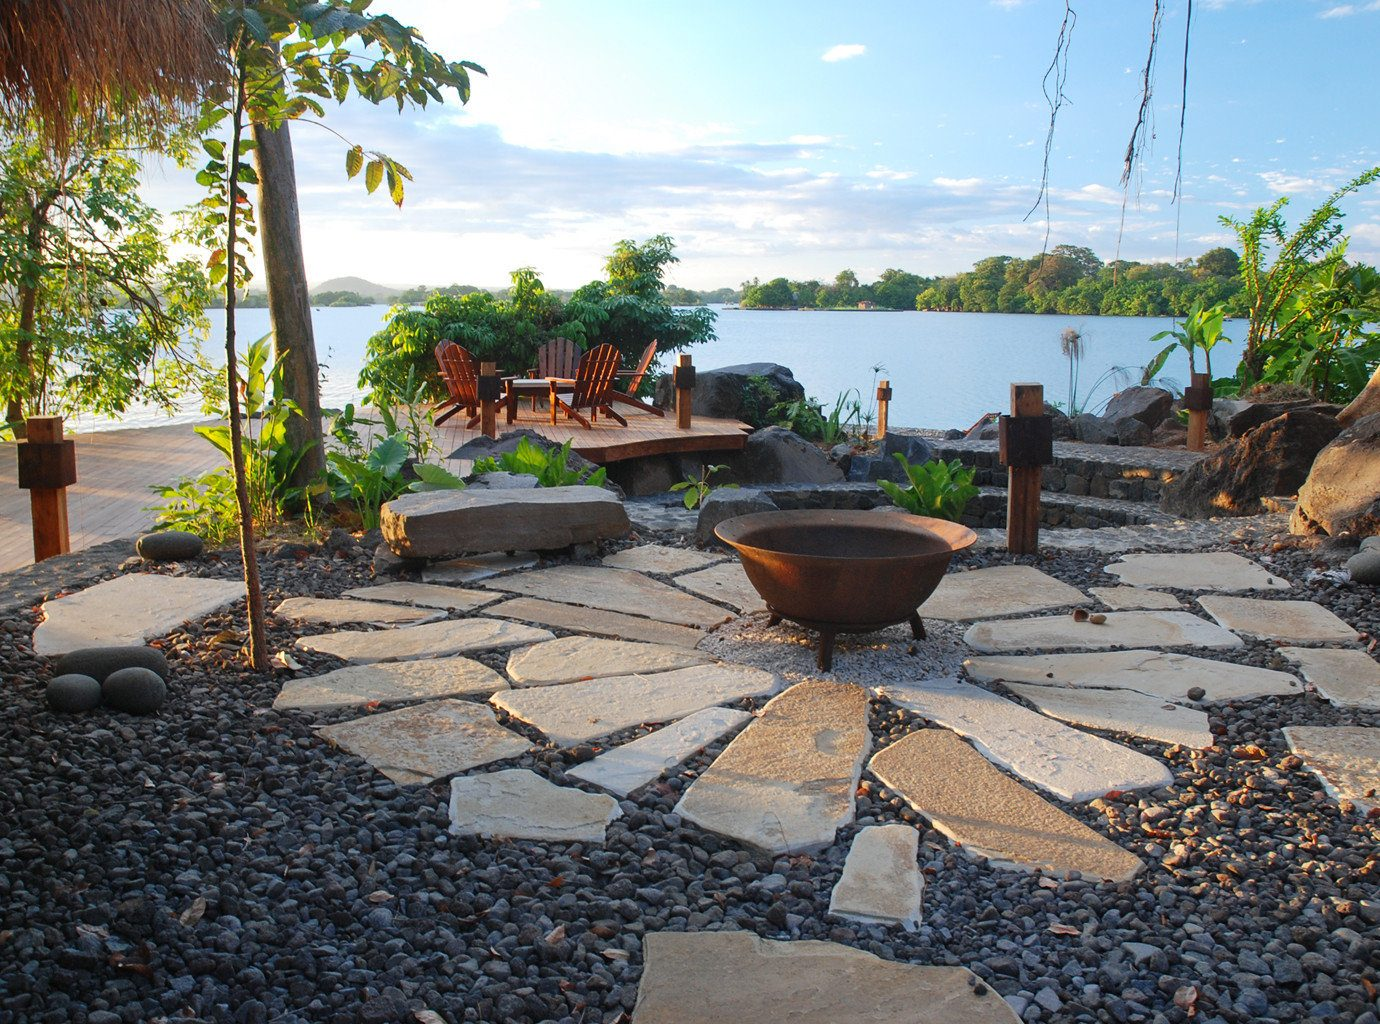 All-inclusive Eco Grounds Resort Romance Romantic Trip Ideas Wellness sky ground outdoor property walkway backyard yard estate swimming pool home real estate Patio landscaping Garden plant sandy stone several